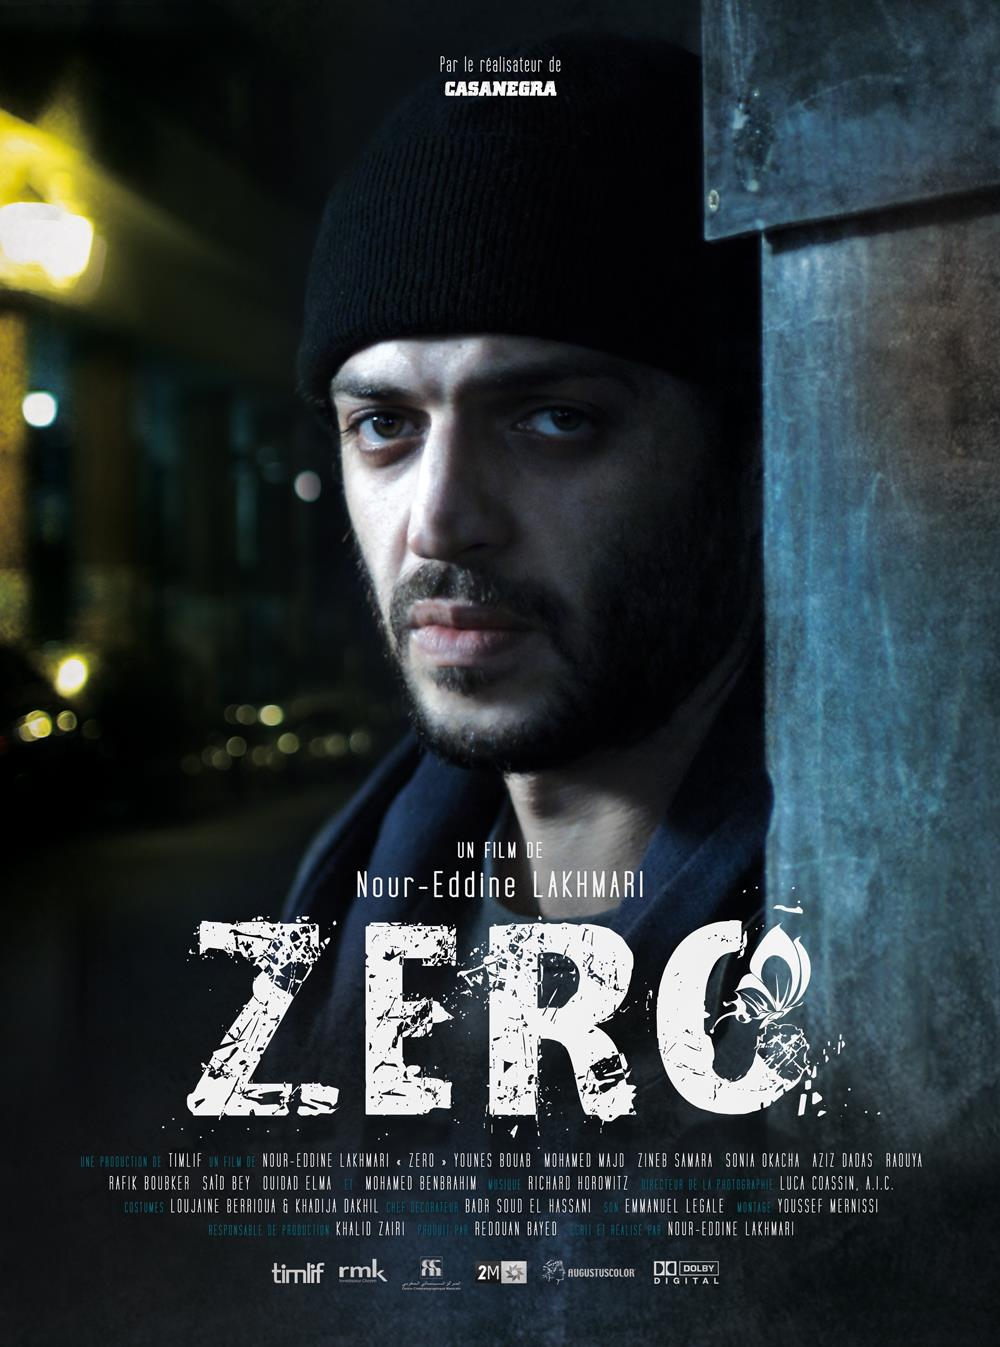 the moroccan film  u0026quot zero u0026quot  was nomminated best film in